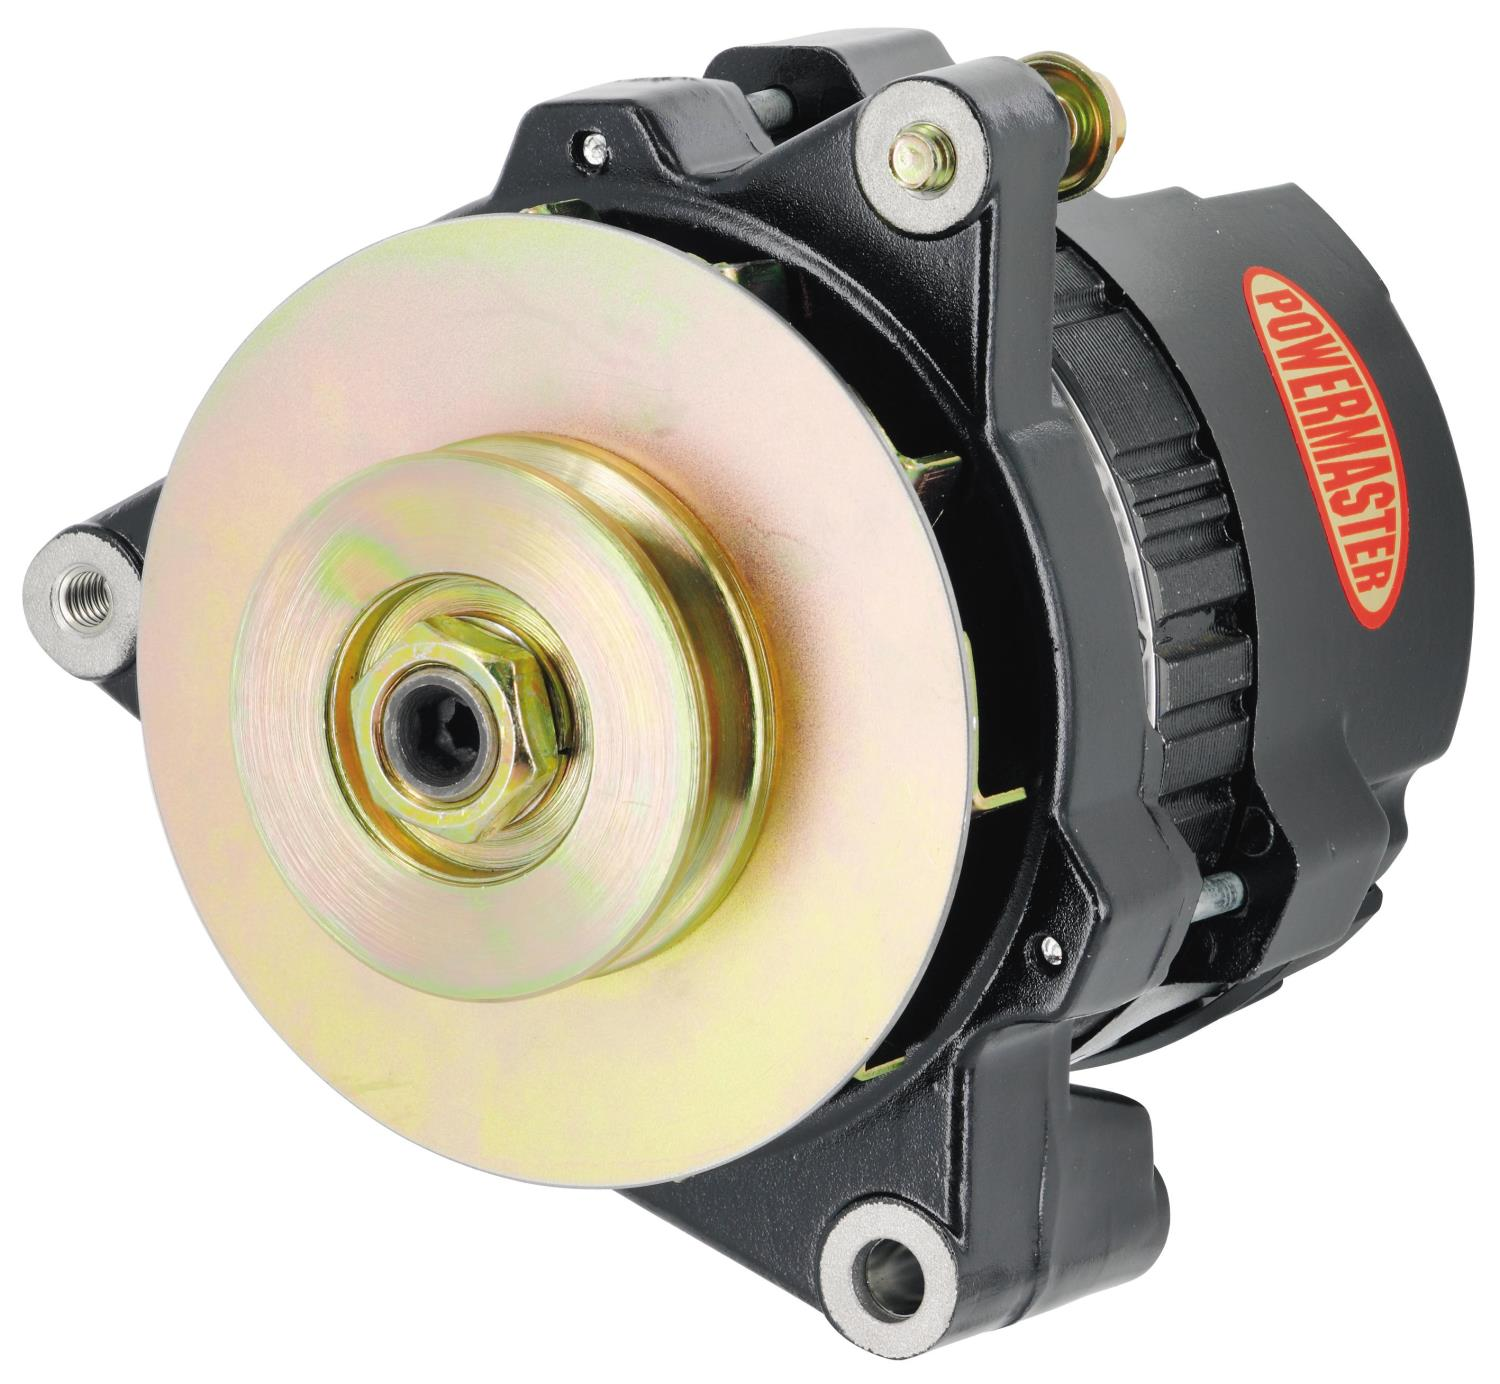 Powermaster 8476-104 - Powermaster GM CS121 Style 5x5 Compact Race Alternators